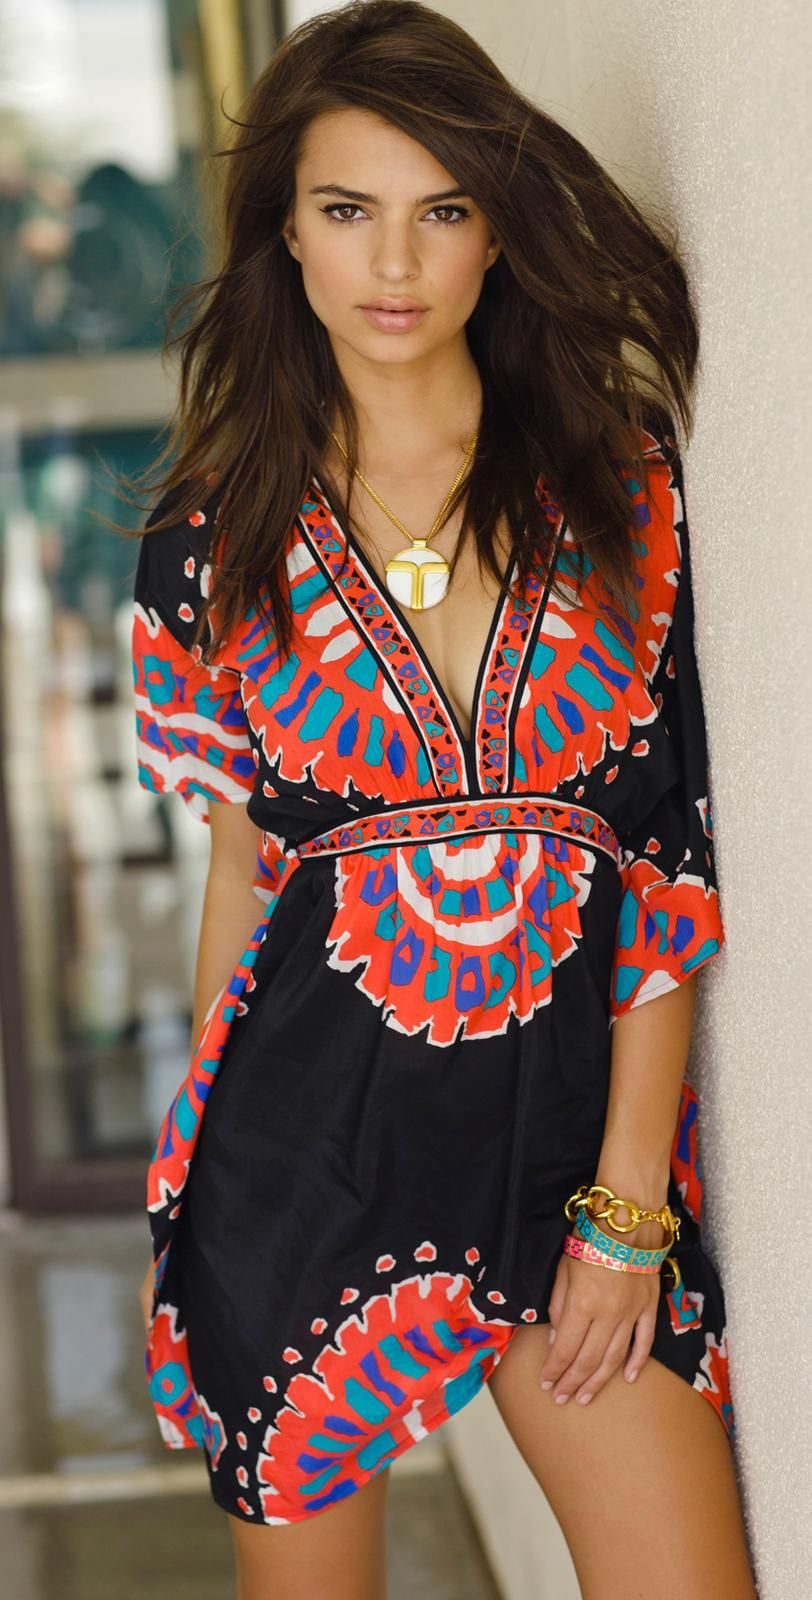 41856c43bc52c Beautiful butterfly cover up tunic trina turk south beach swimsuits  onthesunnysite jpg 812x1600 Swim cover ups